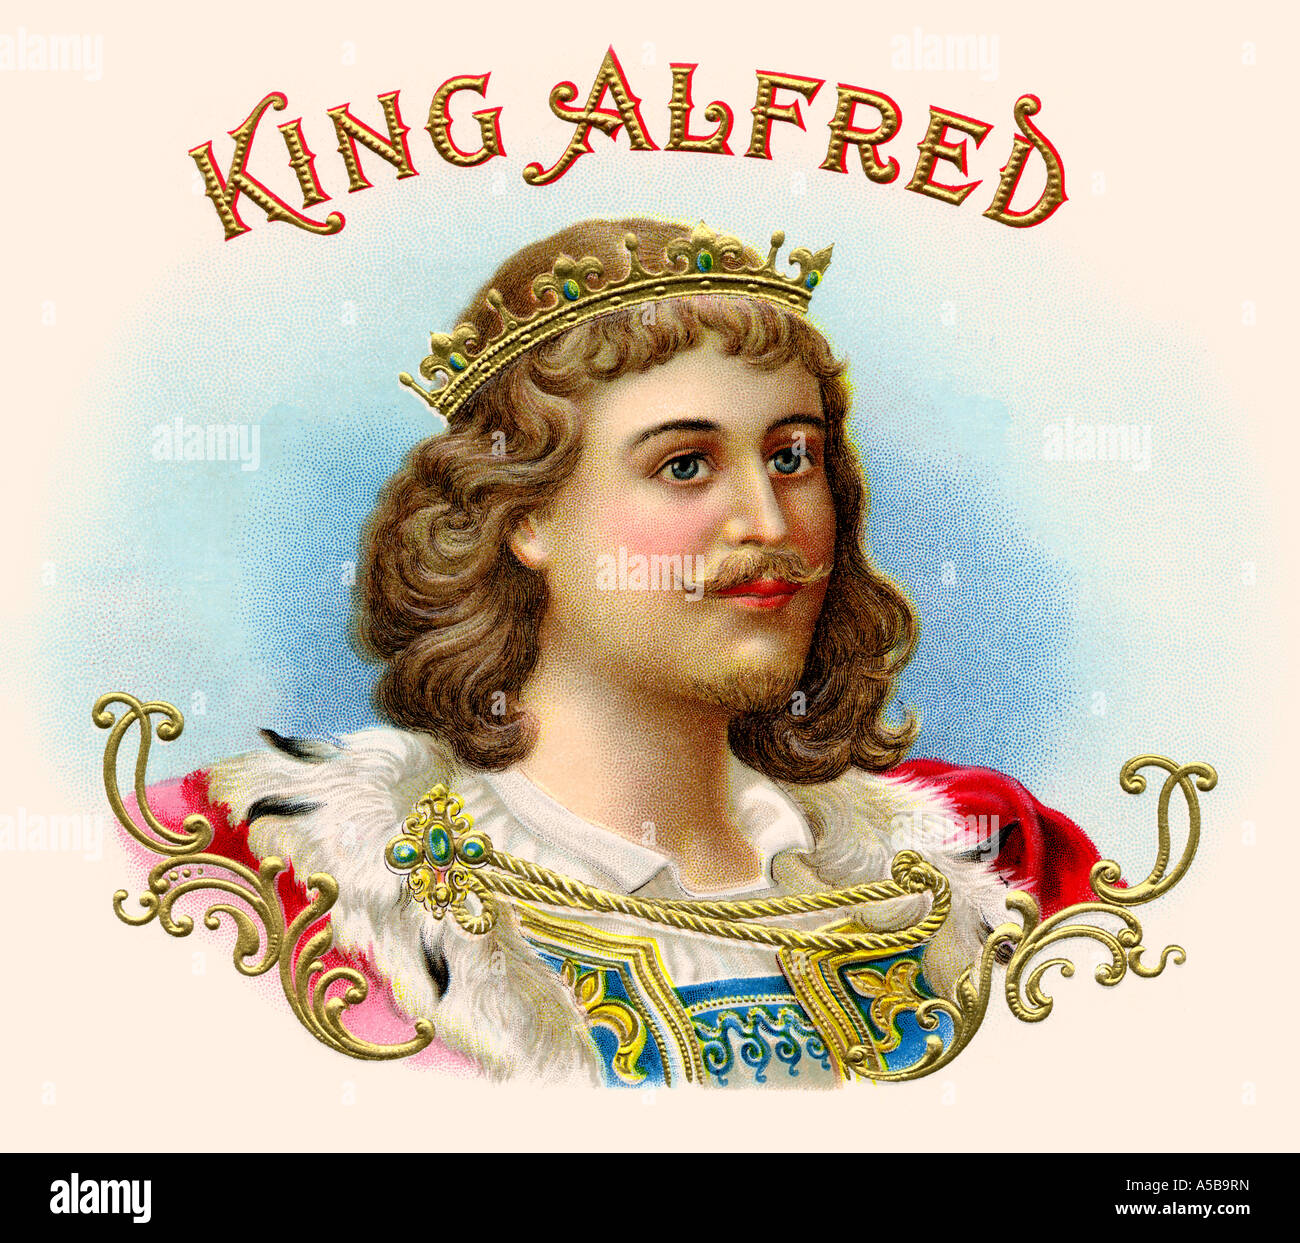 King Alfred - Stock Image